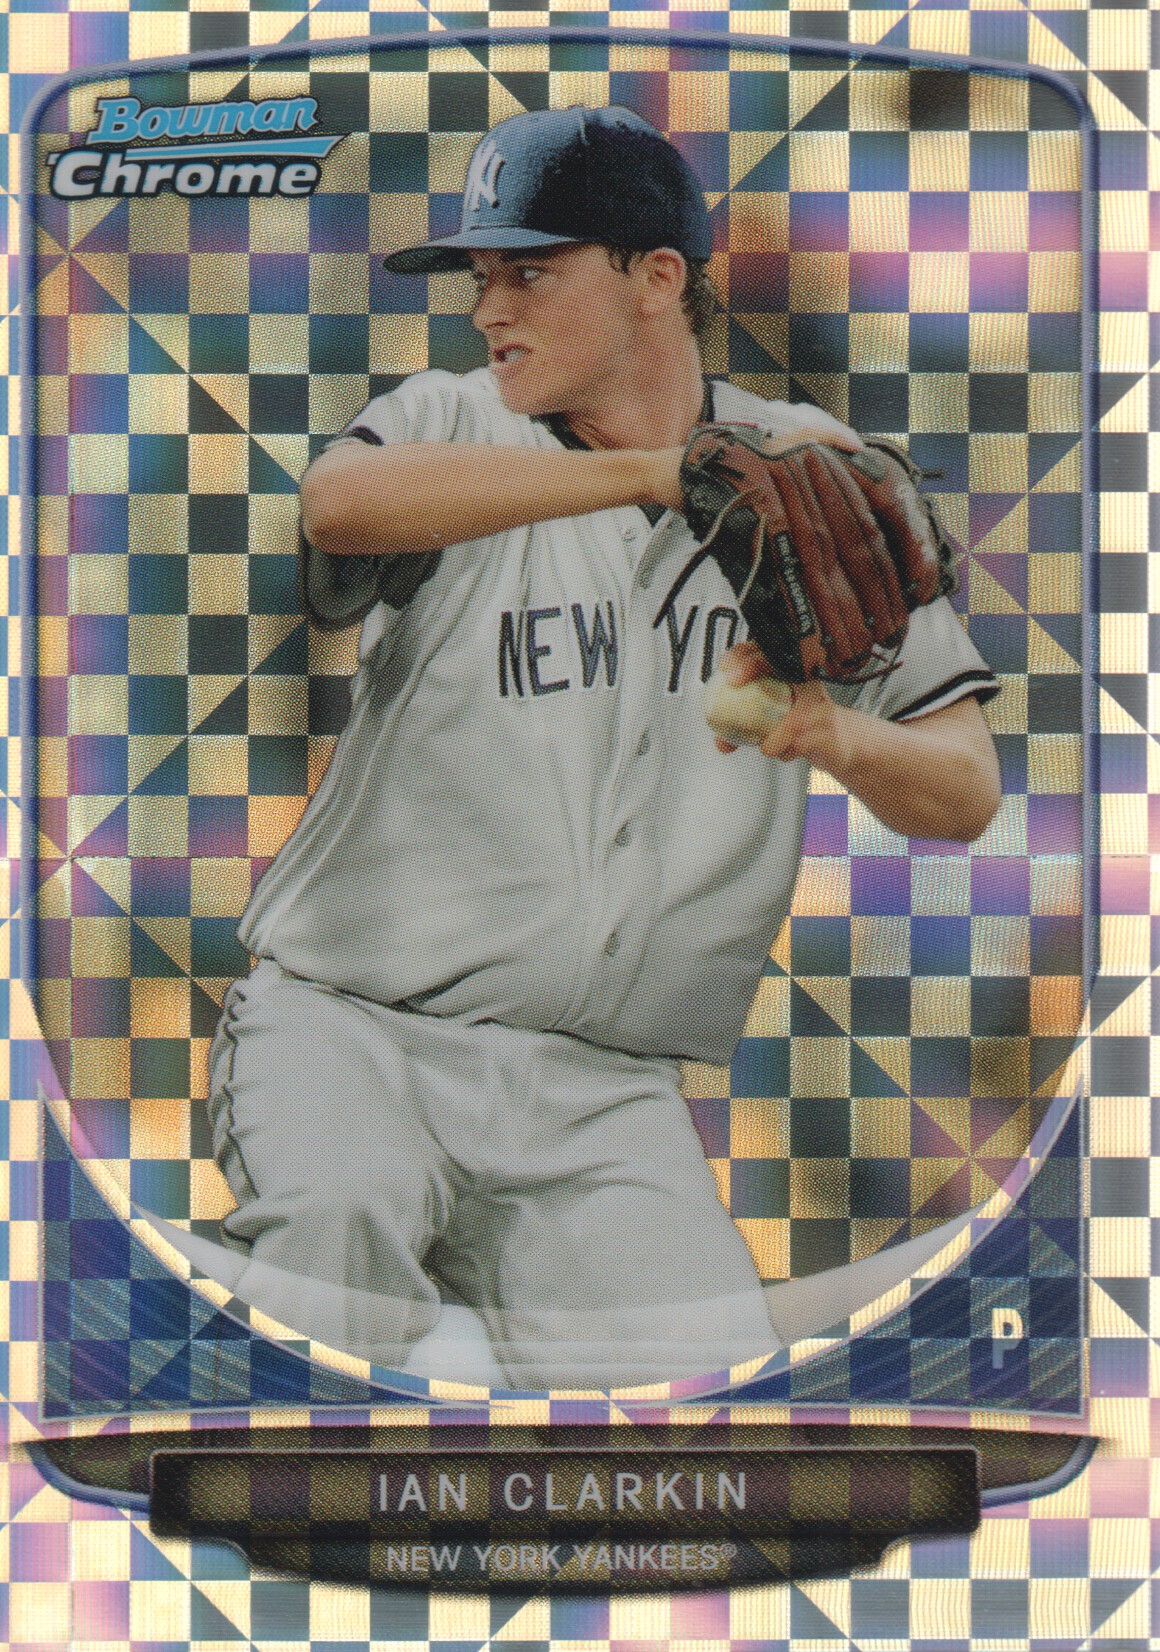 2013 Bowman Chrome Mini X-fractors #43 Ian Clarkin